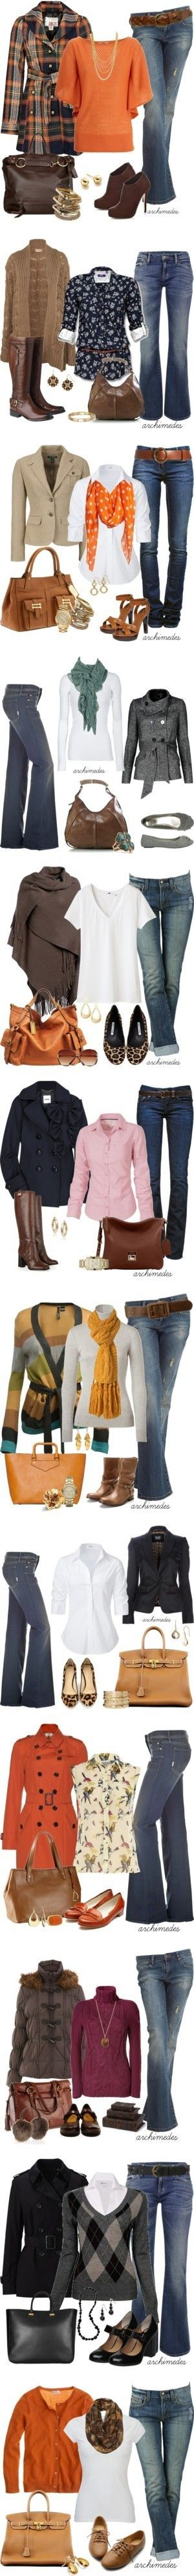 Fall outfits. So ready for fall